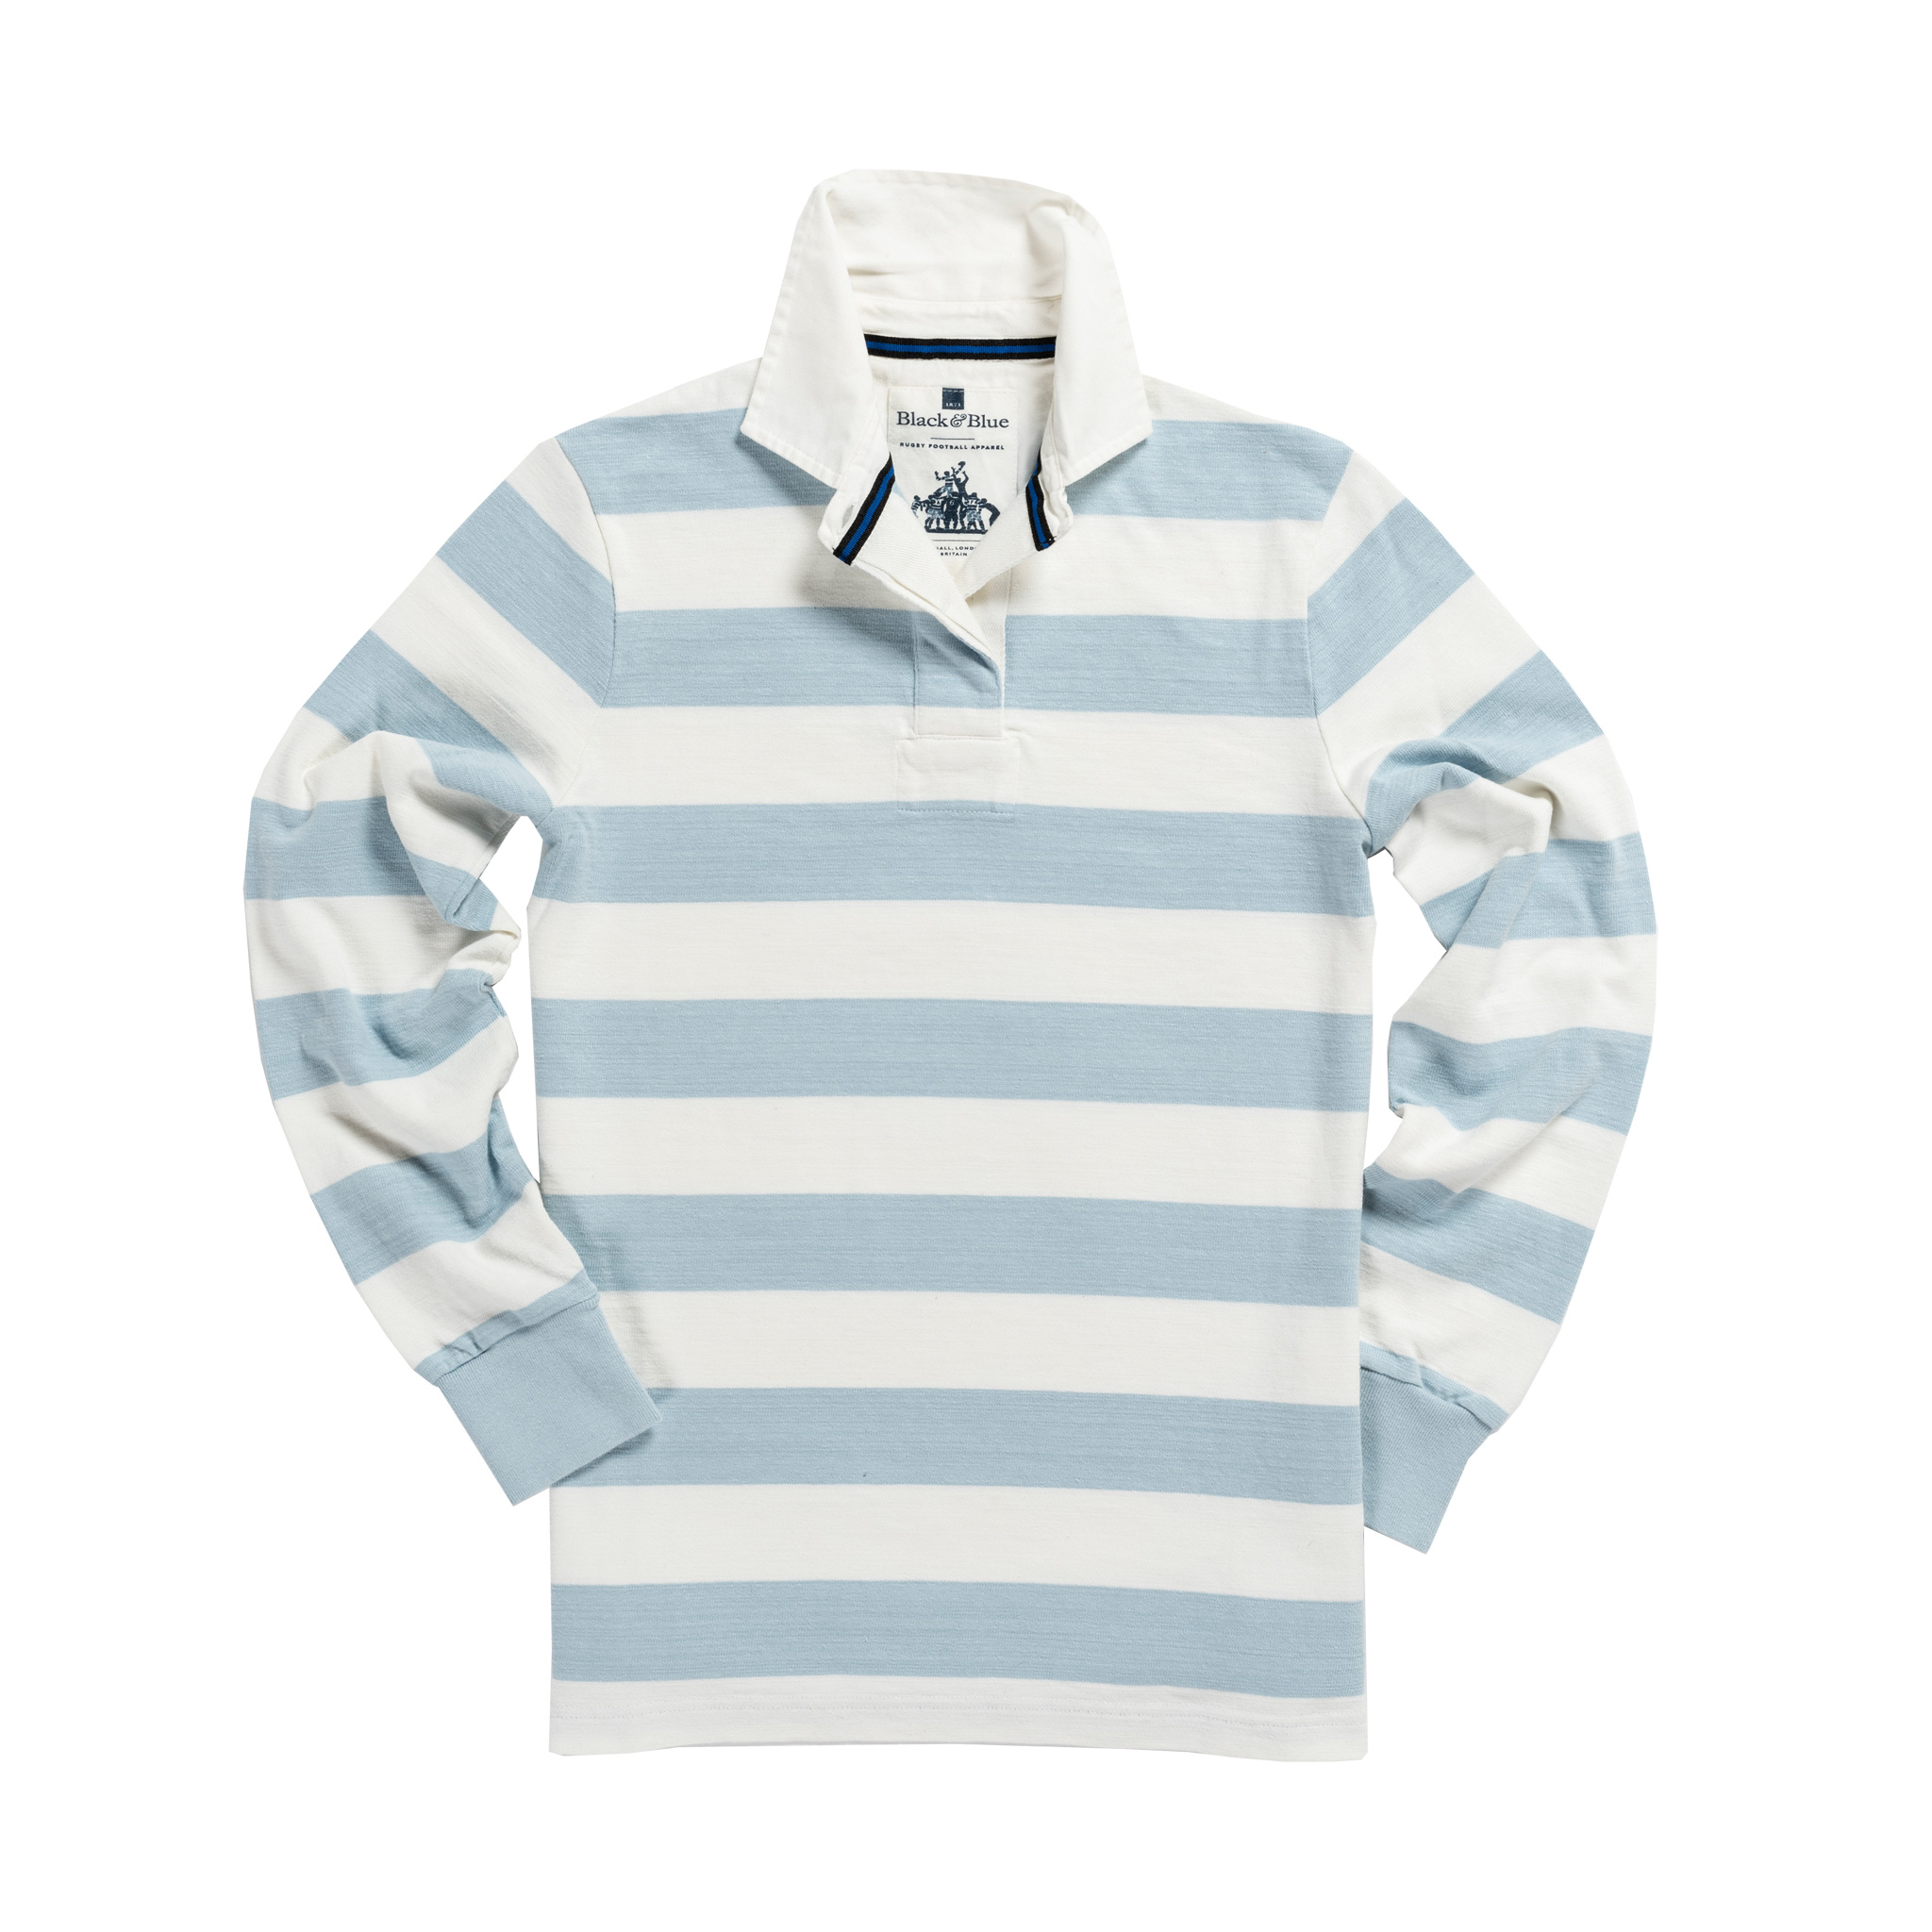 Women's Classic Sky Blue and White 1871 Vintage Rugby Shirt